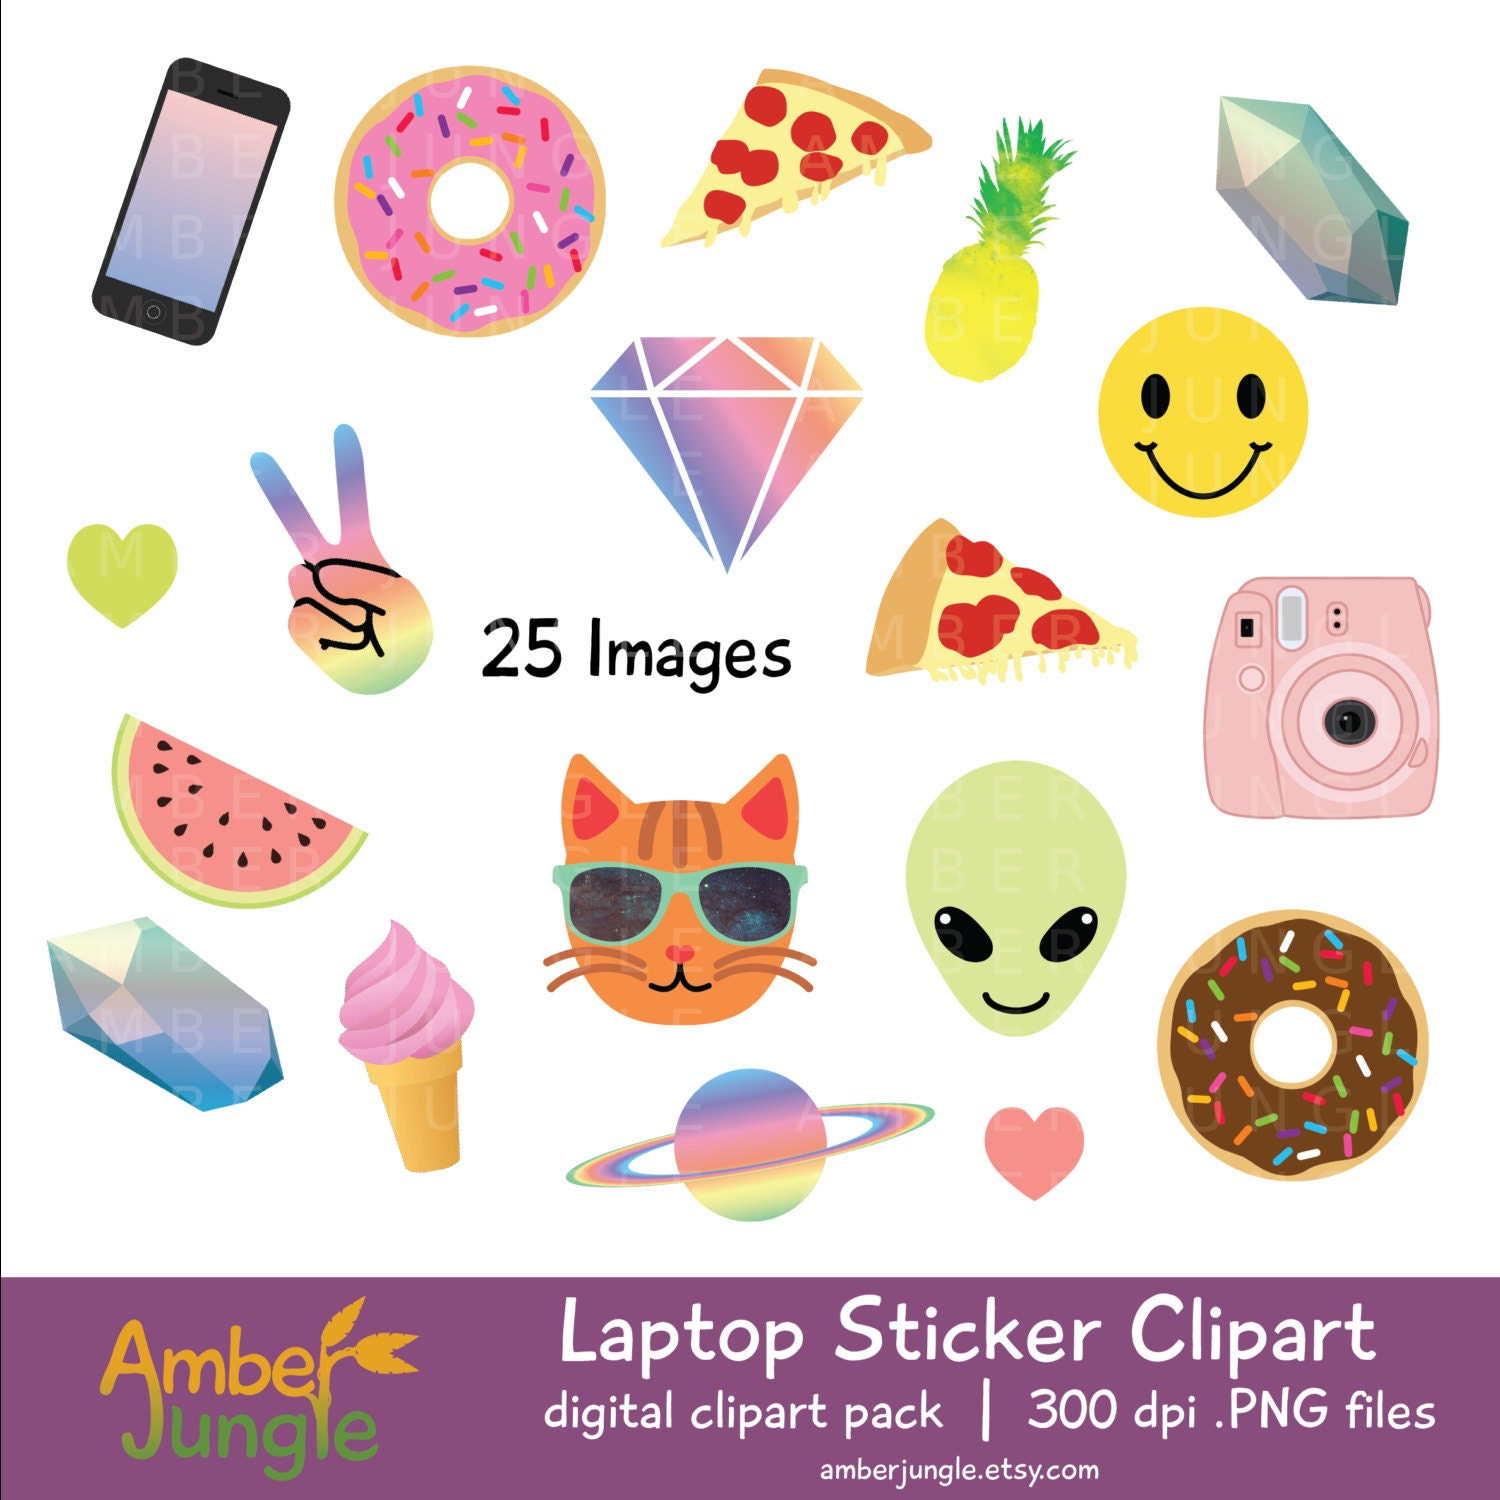 laptop stickers clipart blogger girl tumblr clip art blog rh etsy com car stickers clipart luggage stickers clipart